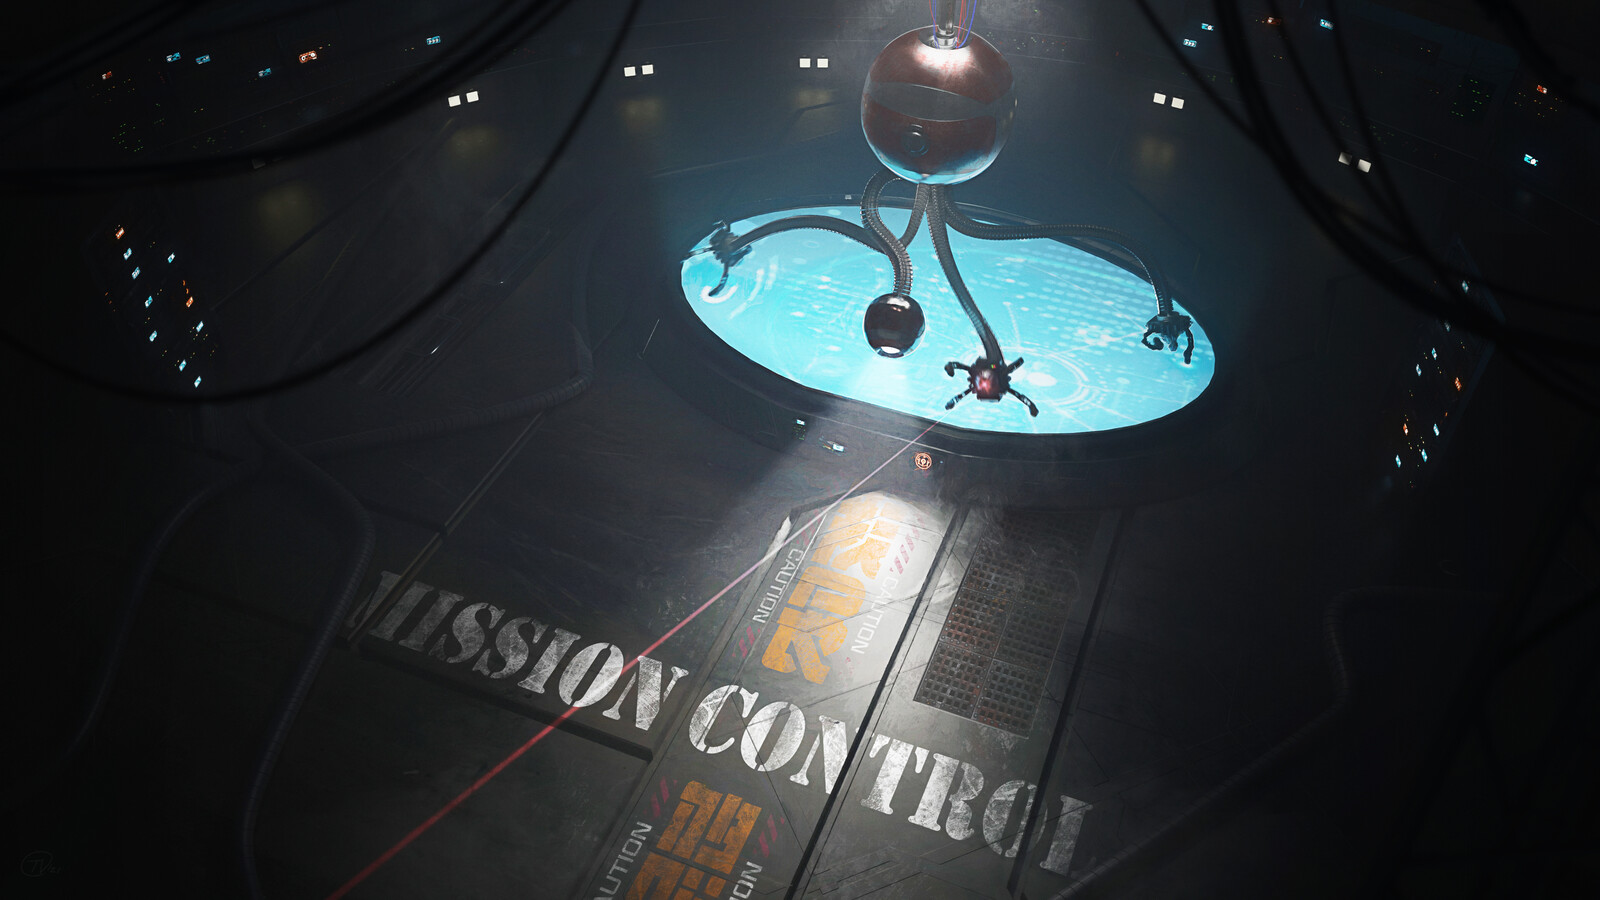 Reborn in Power - Mission Control